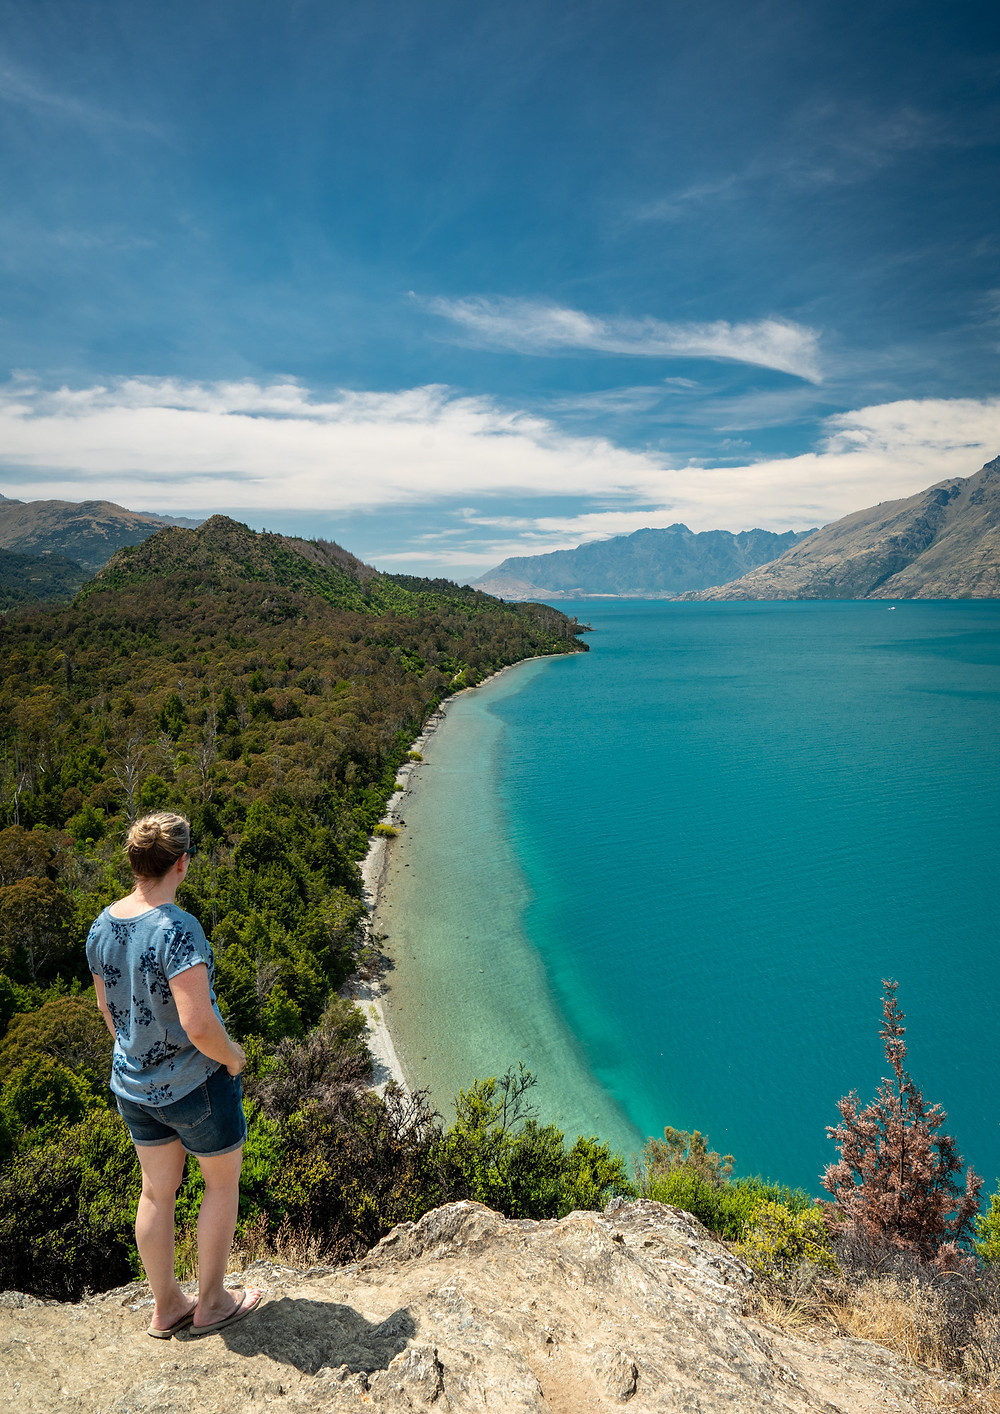 Looking out over Lake Wakatipu from Bobs Cove near Queenstown